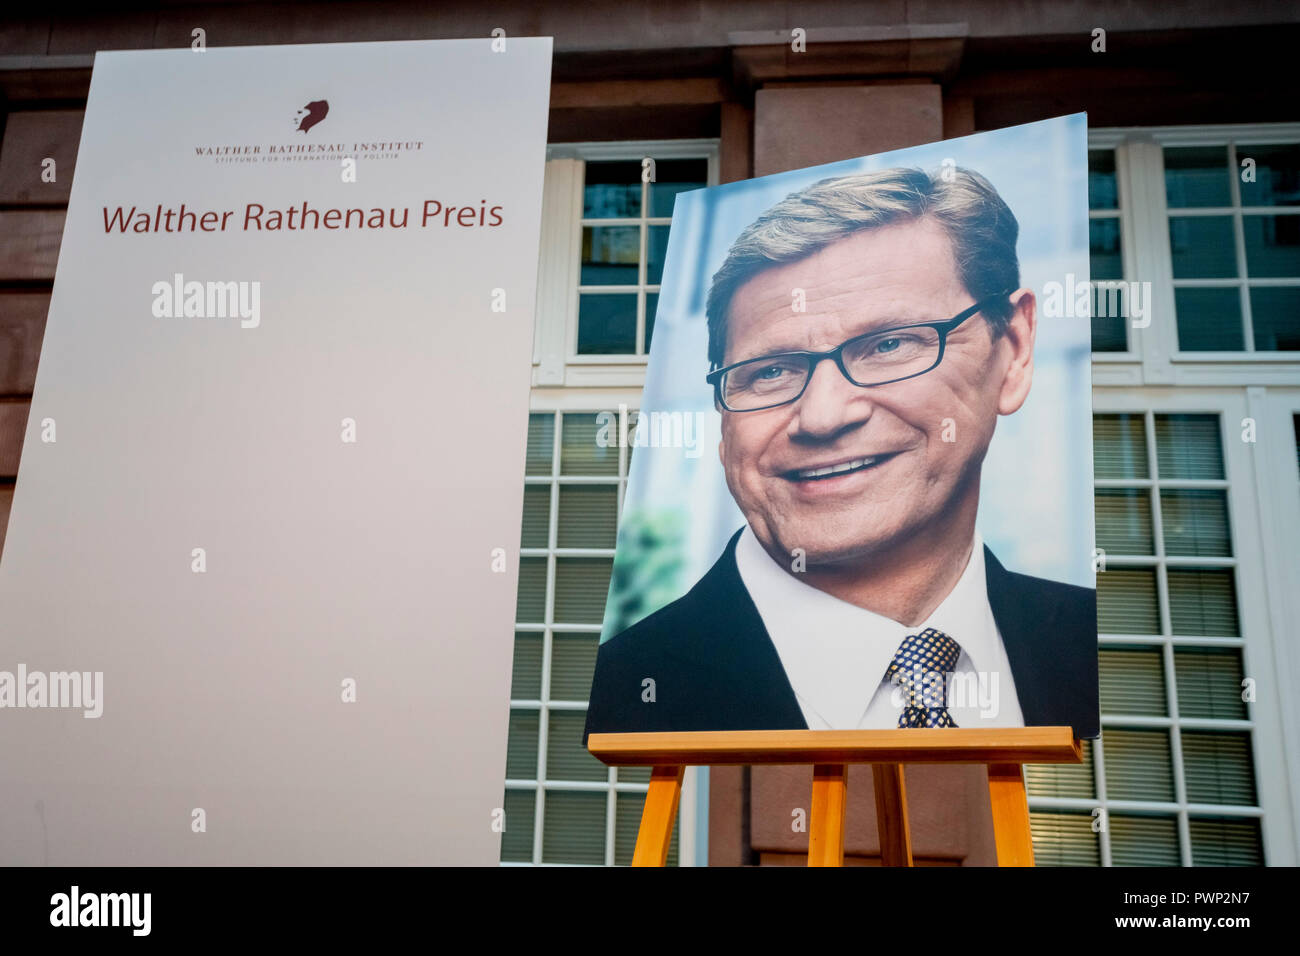 Berlin, Germany. 17th Oct, 2018. 17 October 2018, Germany, Berlin: A portrait photo of former Foreign Minister Guido Westerwelle stands on an easel at the posthumous presentation of the Rathenau Prize 2018. Westerwelle is posthumously honoured by the Walther Rathenau Institute, Foundation for International Politics, 'for his work in the sense of a peaceful world order based on international understanding'. Credit: Christoph Soeder/dpa/Alamy Live News - Stock Image